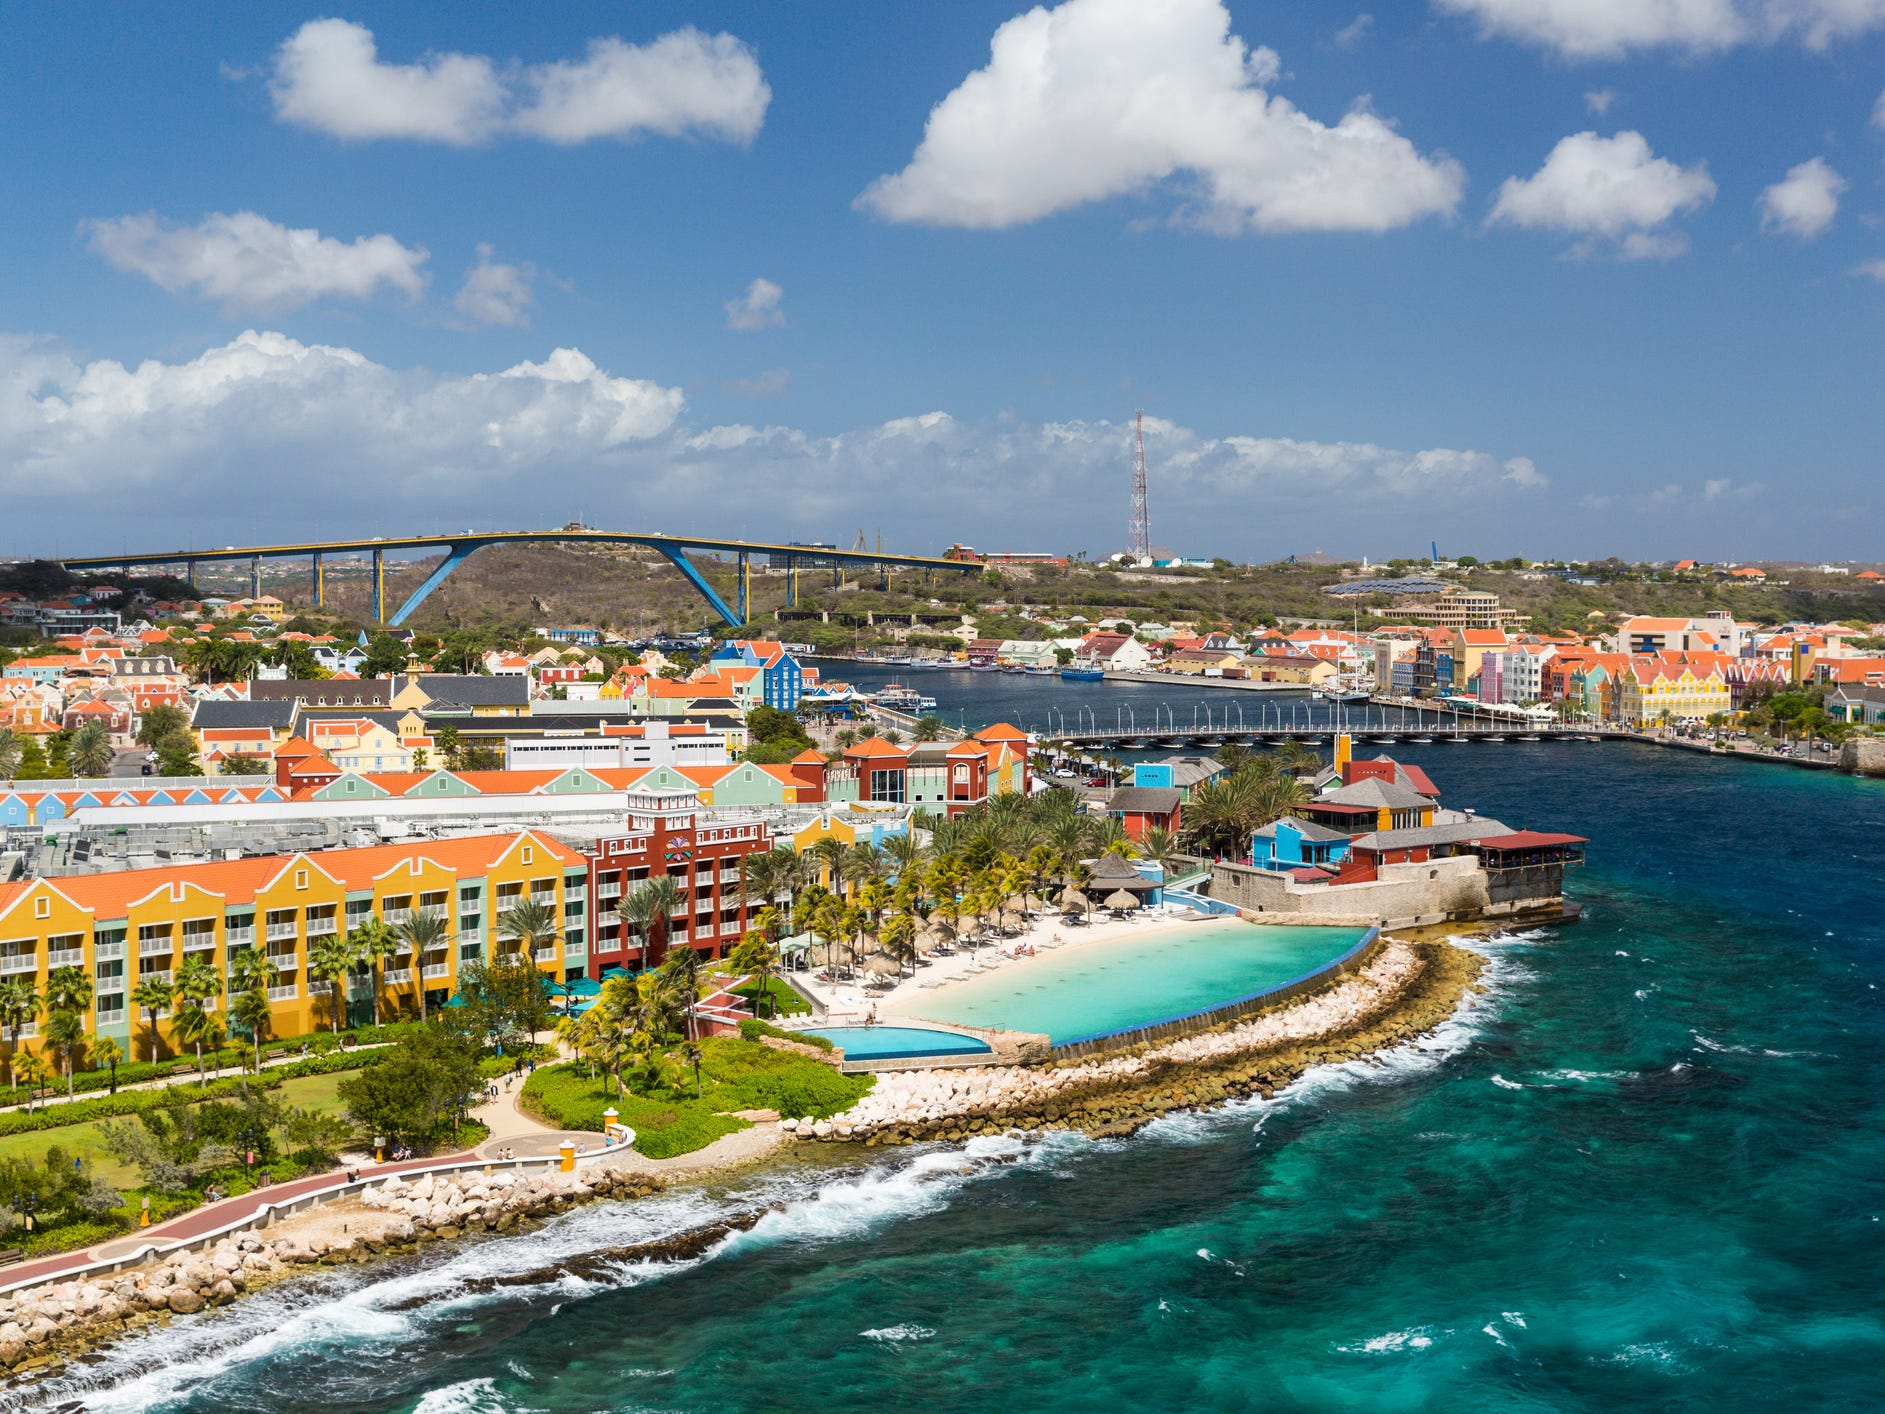 Curacao: This Dutch island is located in the southern part of the Caribbean and is best known as a hot spot for European and Canadian travelers, but there are direct, inexpensive routes from U.S. hubs like New York City and Miami, too. Curacao is one of the best diving spots in the Caribbean and has cheaper hotels than the other nearby islands like Aruba. You'll be more than impressed with the color of the water, as well as by the affordable prices at hip restaurants and bars in the Pietermaai area.